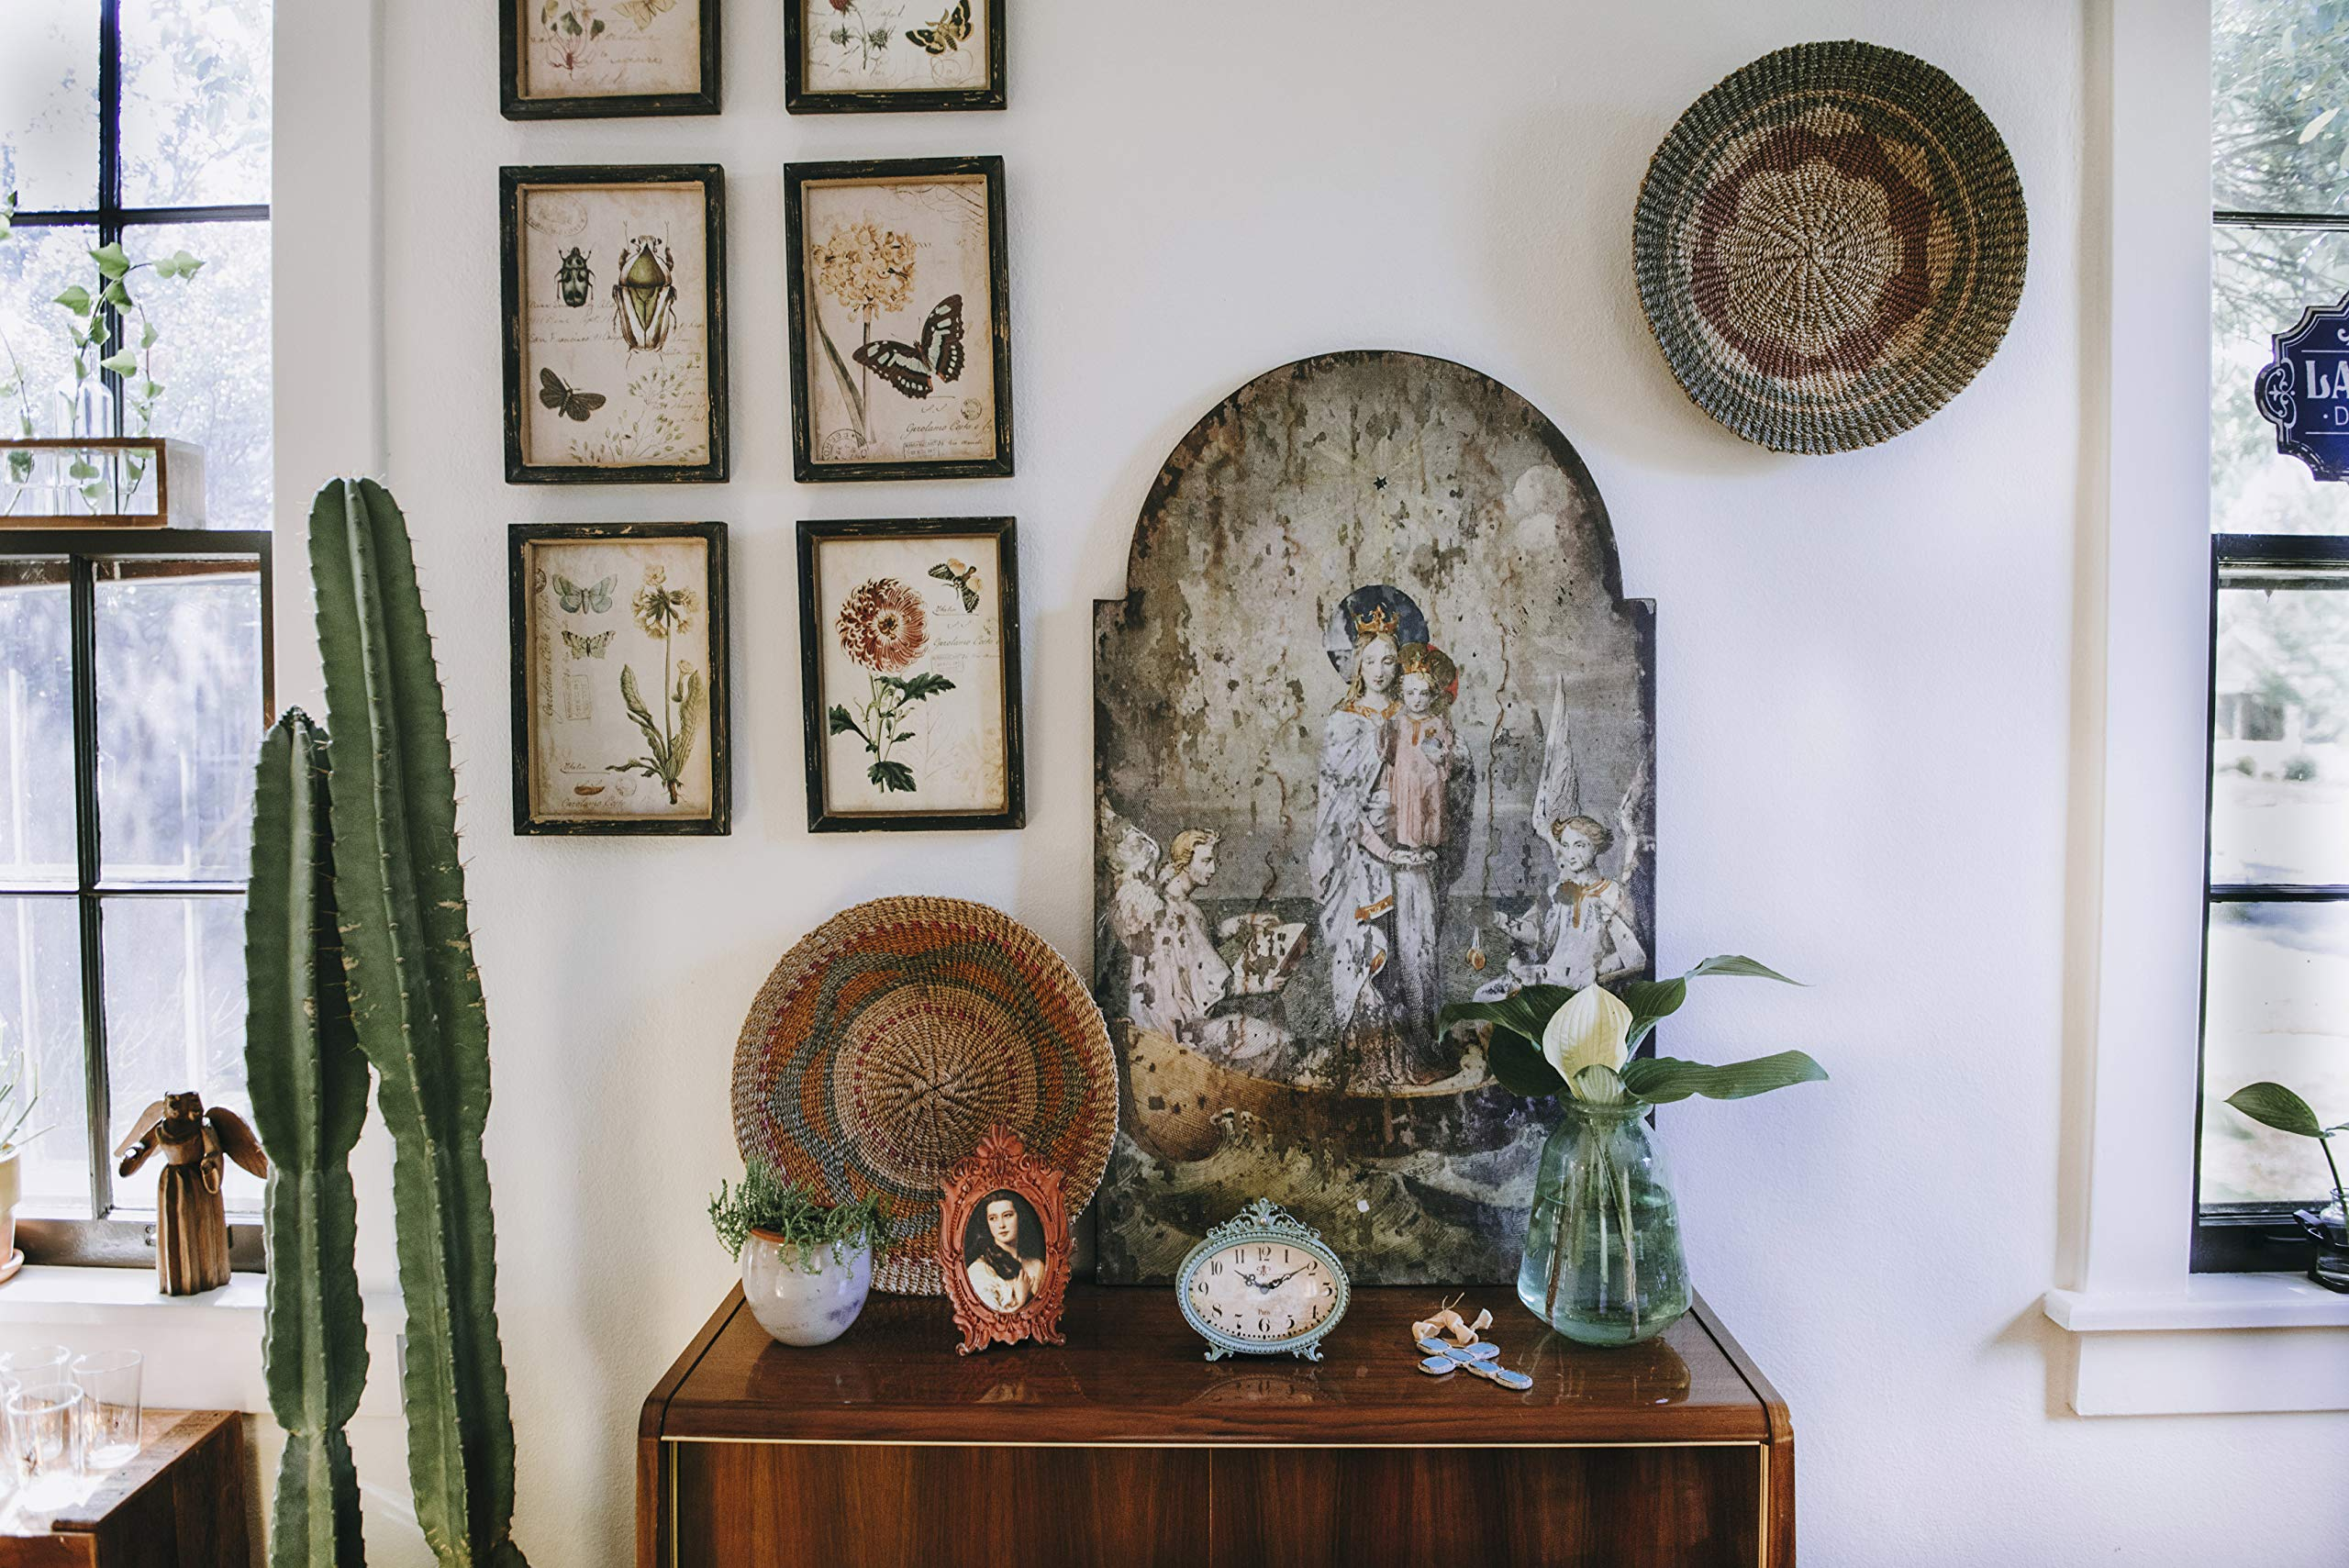 Creative Co-op Vintage Mary & Angels Image on Decorative Wood Wall Décor by Creative Co-op (Image #4)